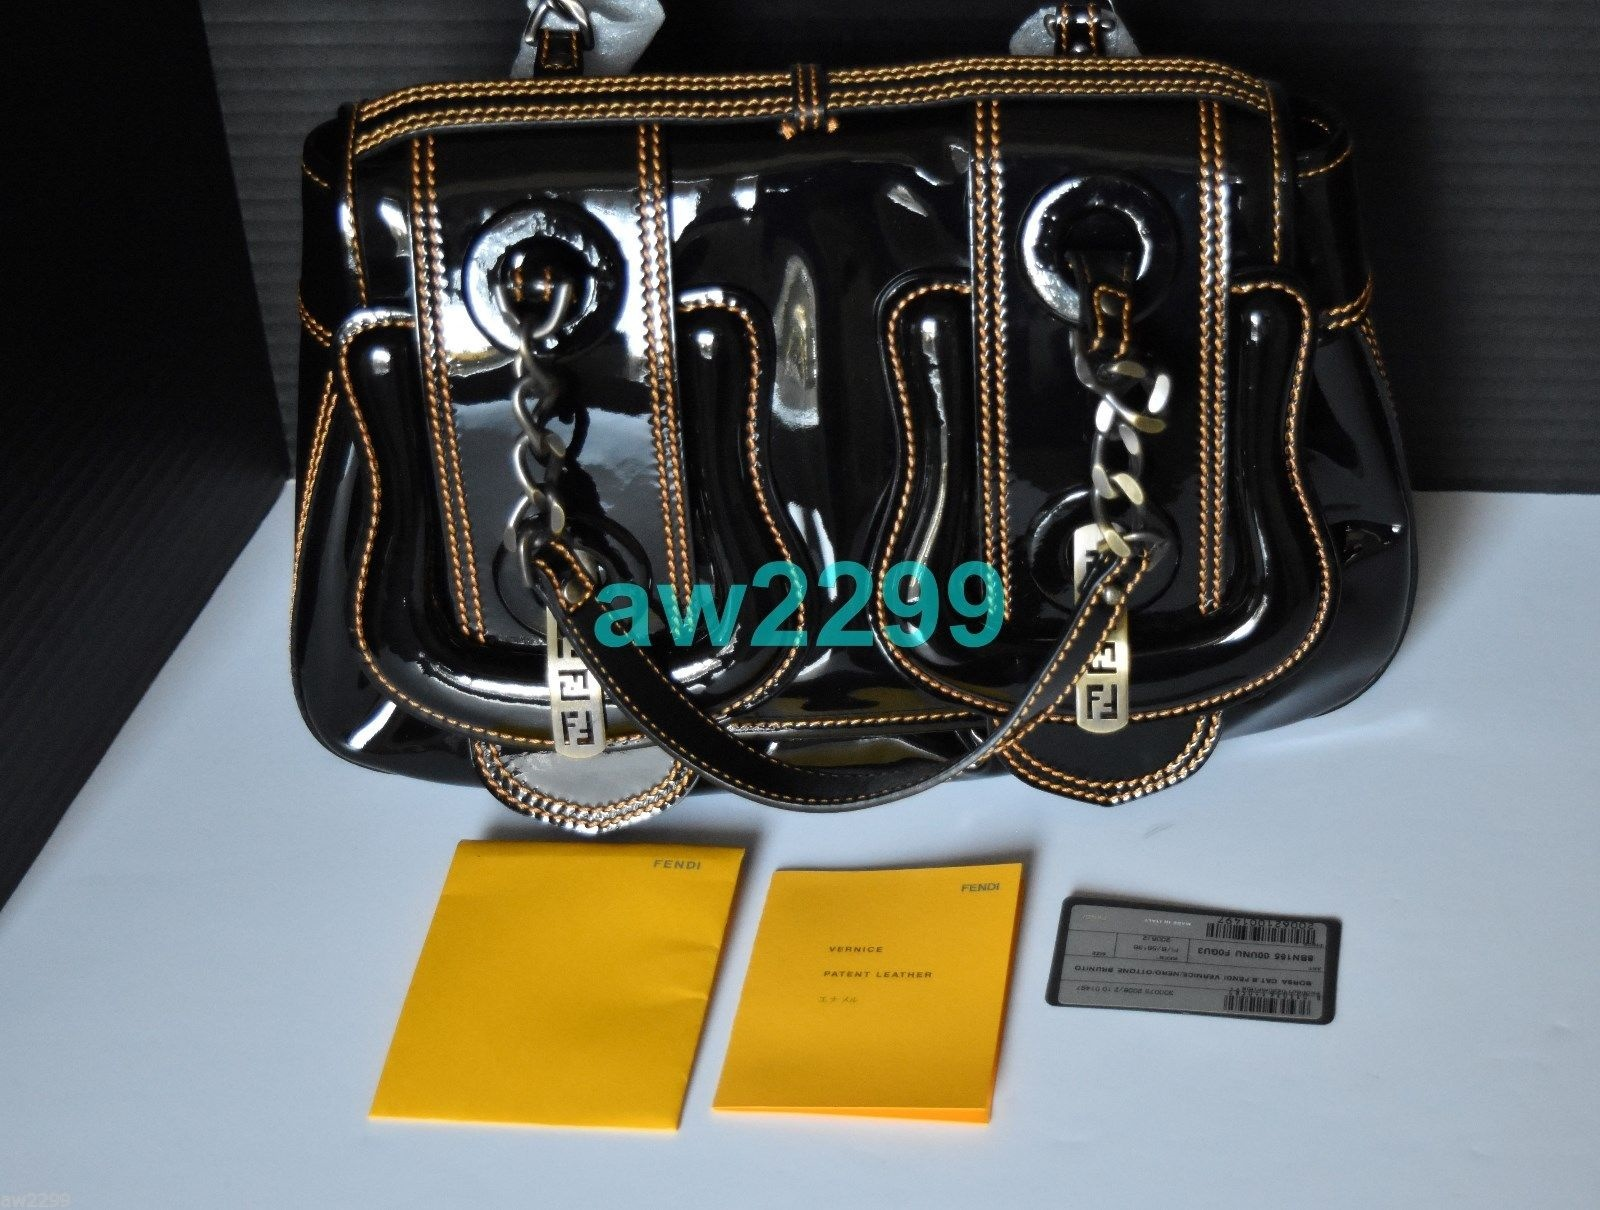 24bd53b99b29 FENDI  1850 AUTHENTIC NEW B BUCKLE PATENT LEATHER BAG WITH CONTRAST ...